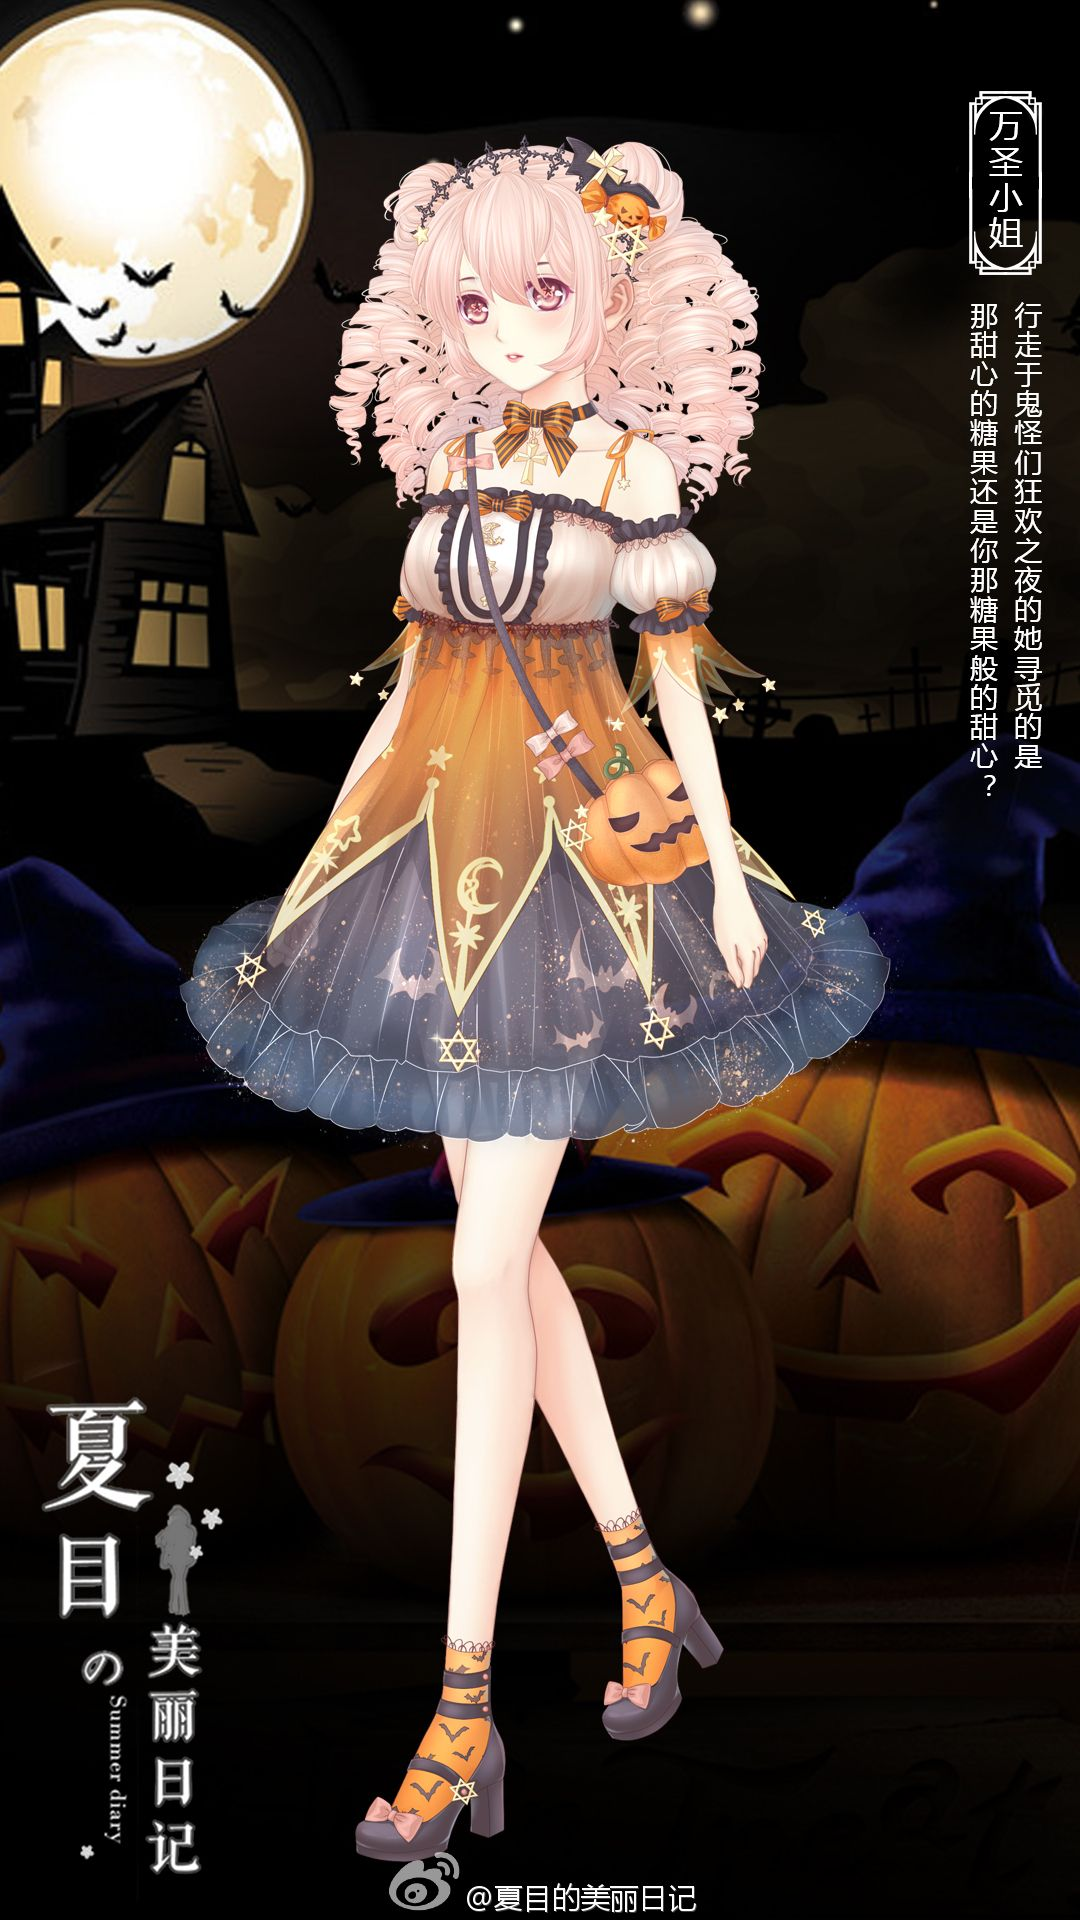 Halloween girl costume design ngôi sao manga art anime art anime girl